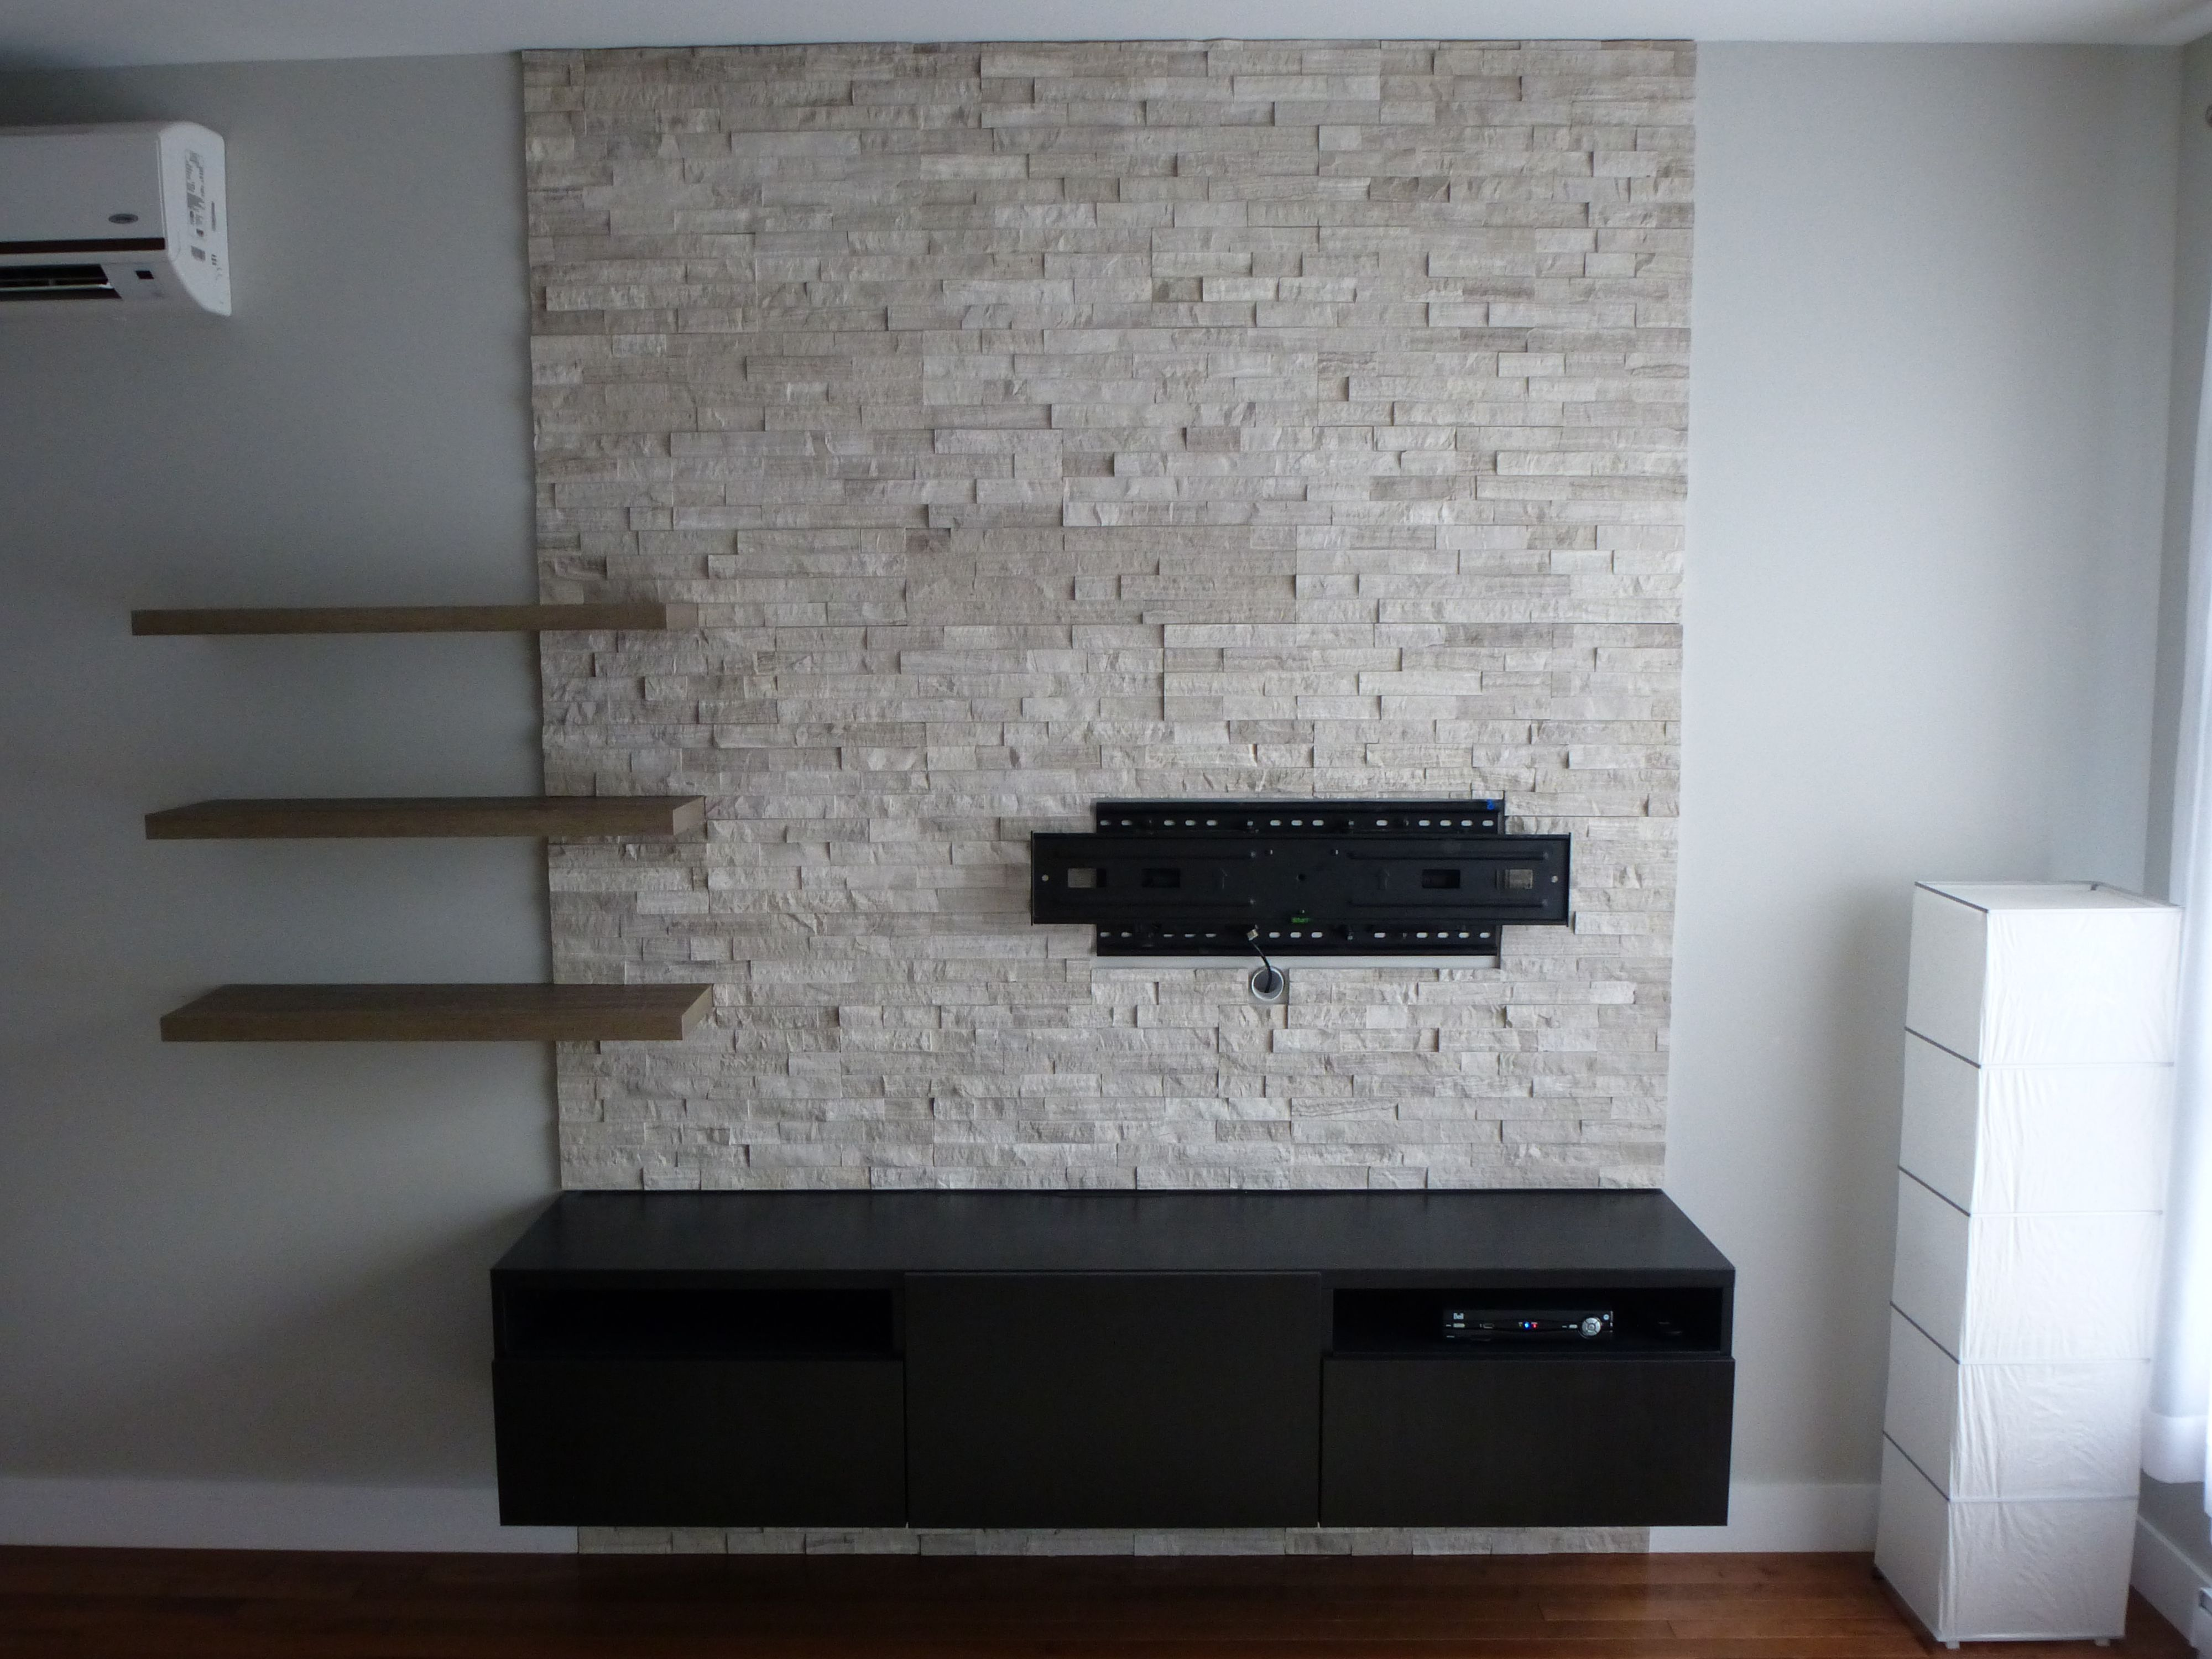 Tv wall stone erthcoverings ledgestone silver fox panels with